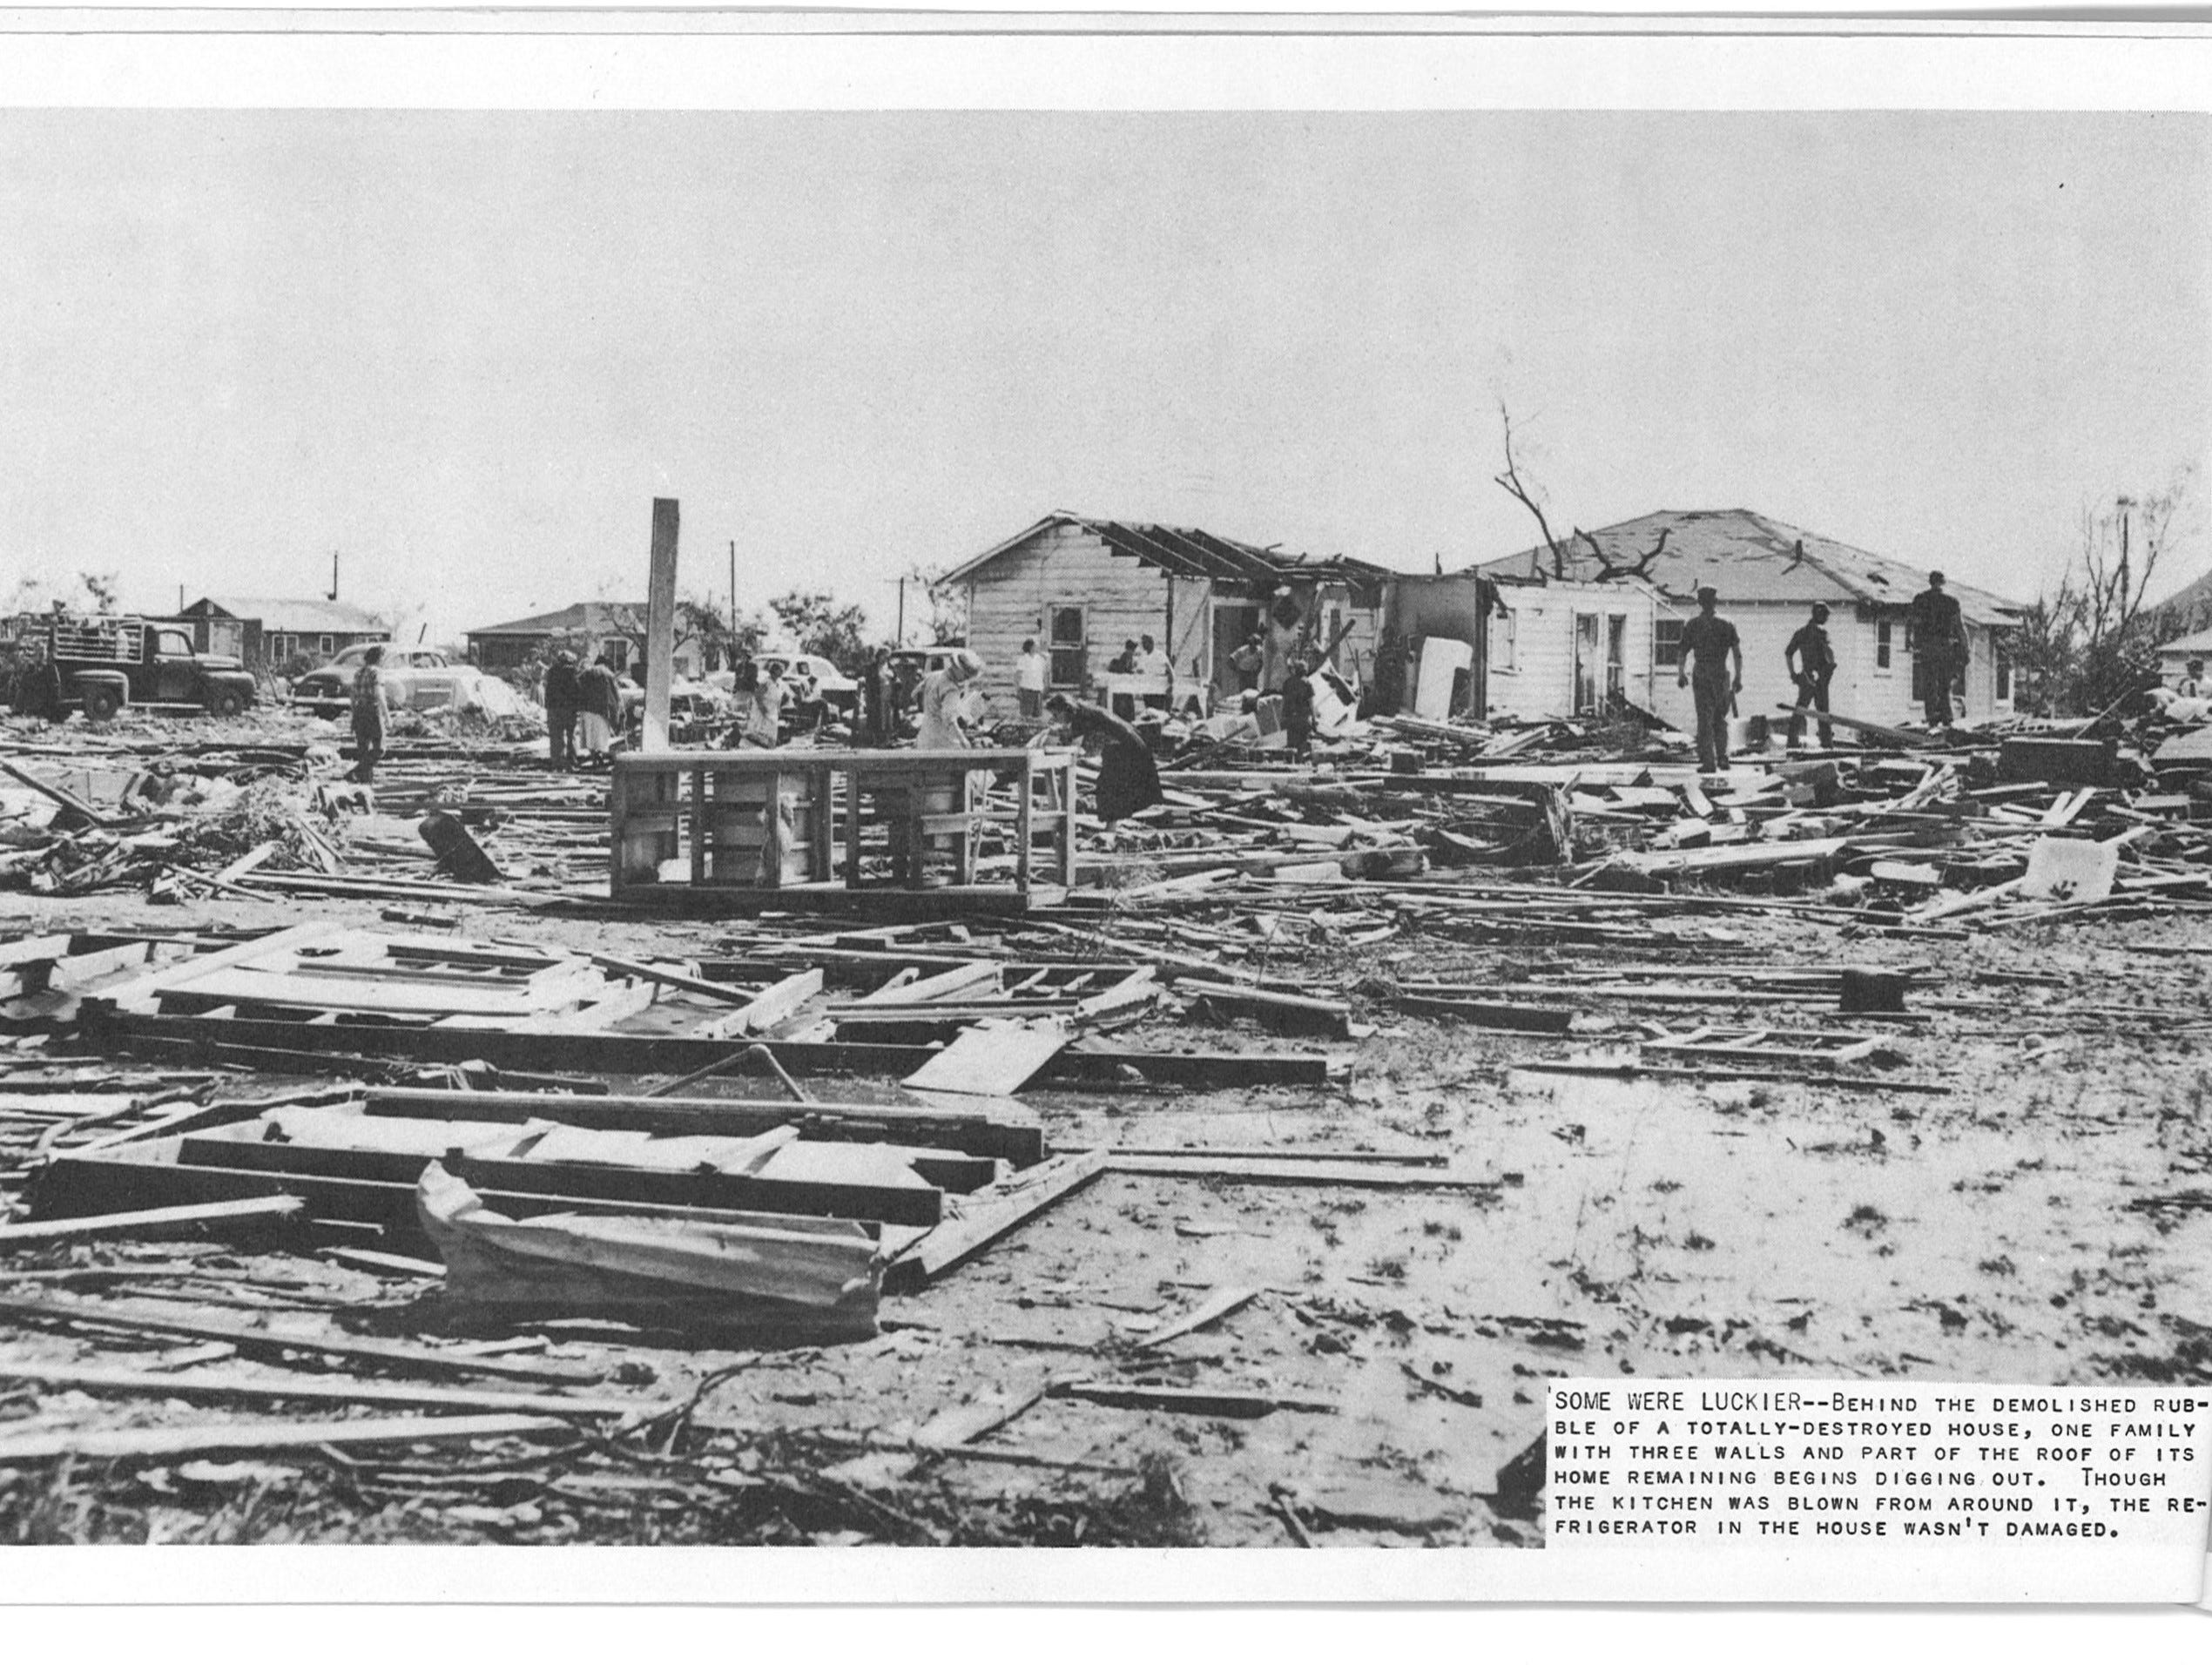 The Lake View tornado caused over $2 million in damages on May 11, 1953. The original cut-line reads: Behind the demolished rubble of a totally-destroyed house, one family with three walls and part of the roof of its home remaining begins digging out. Through the kitchen was blown from around it, the refrigerator in the house wasn't damaged.